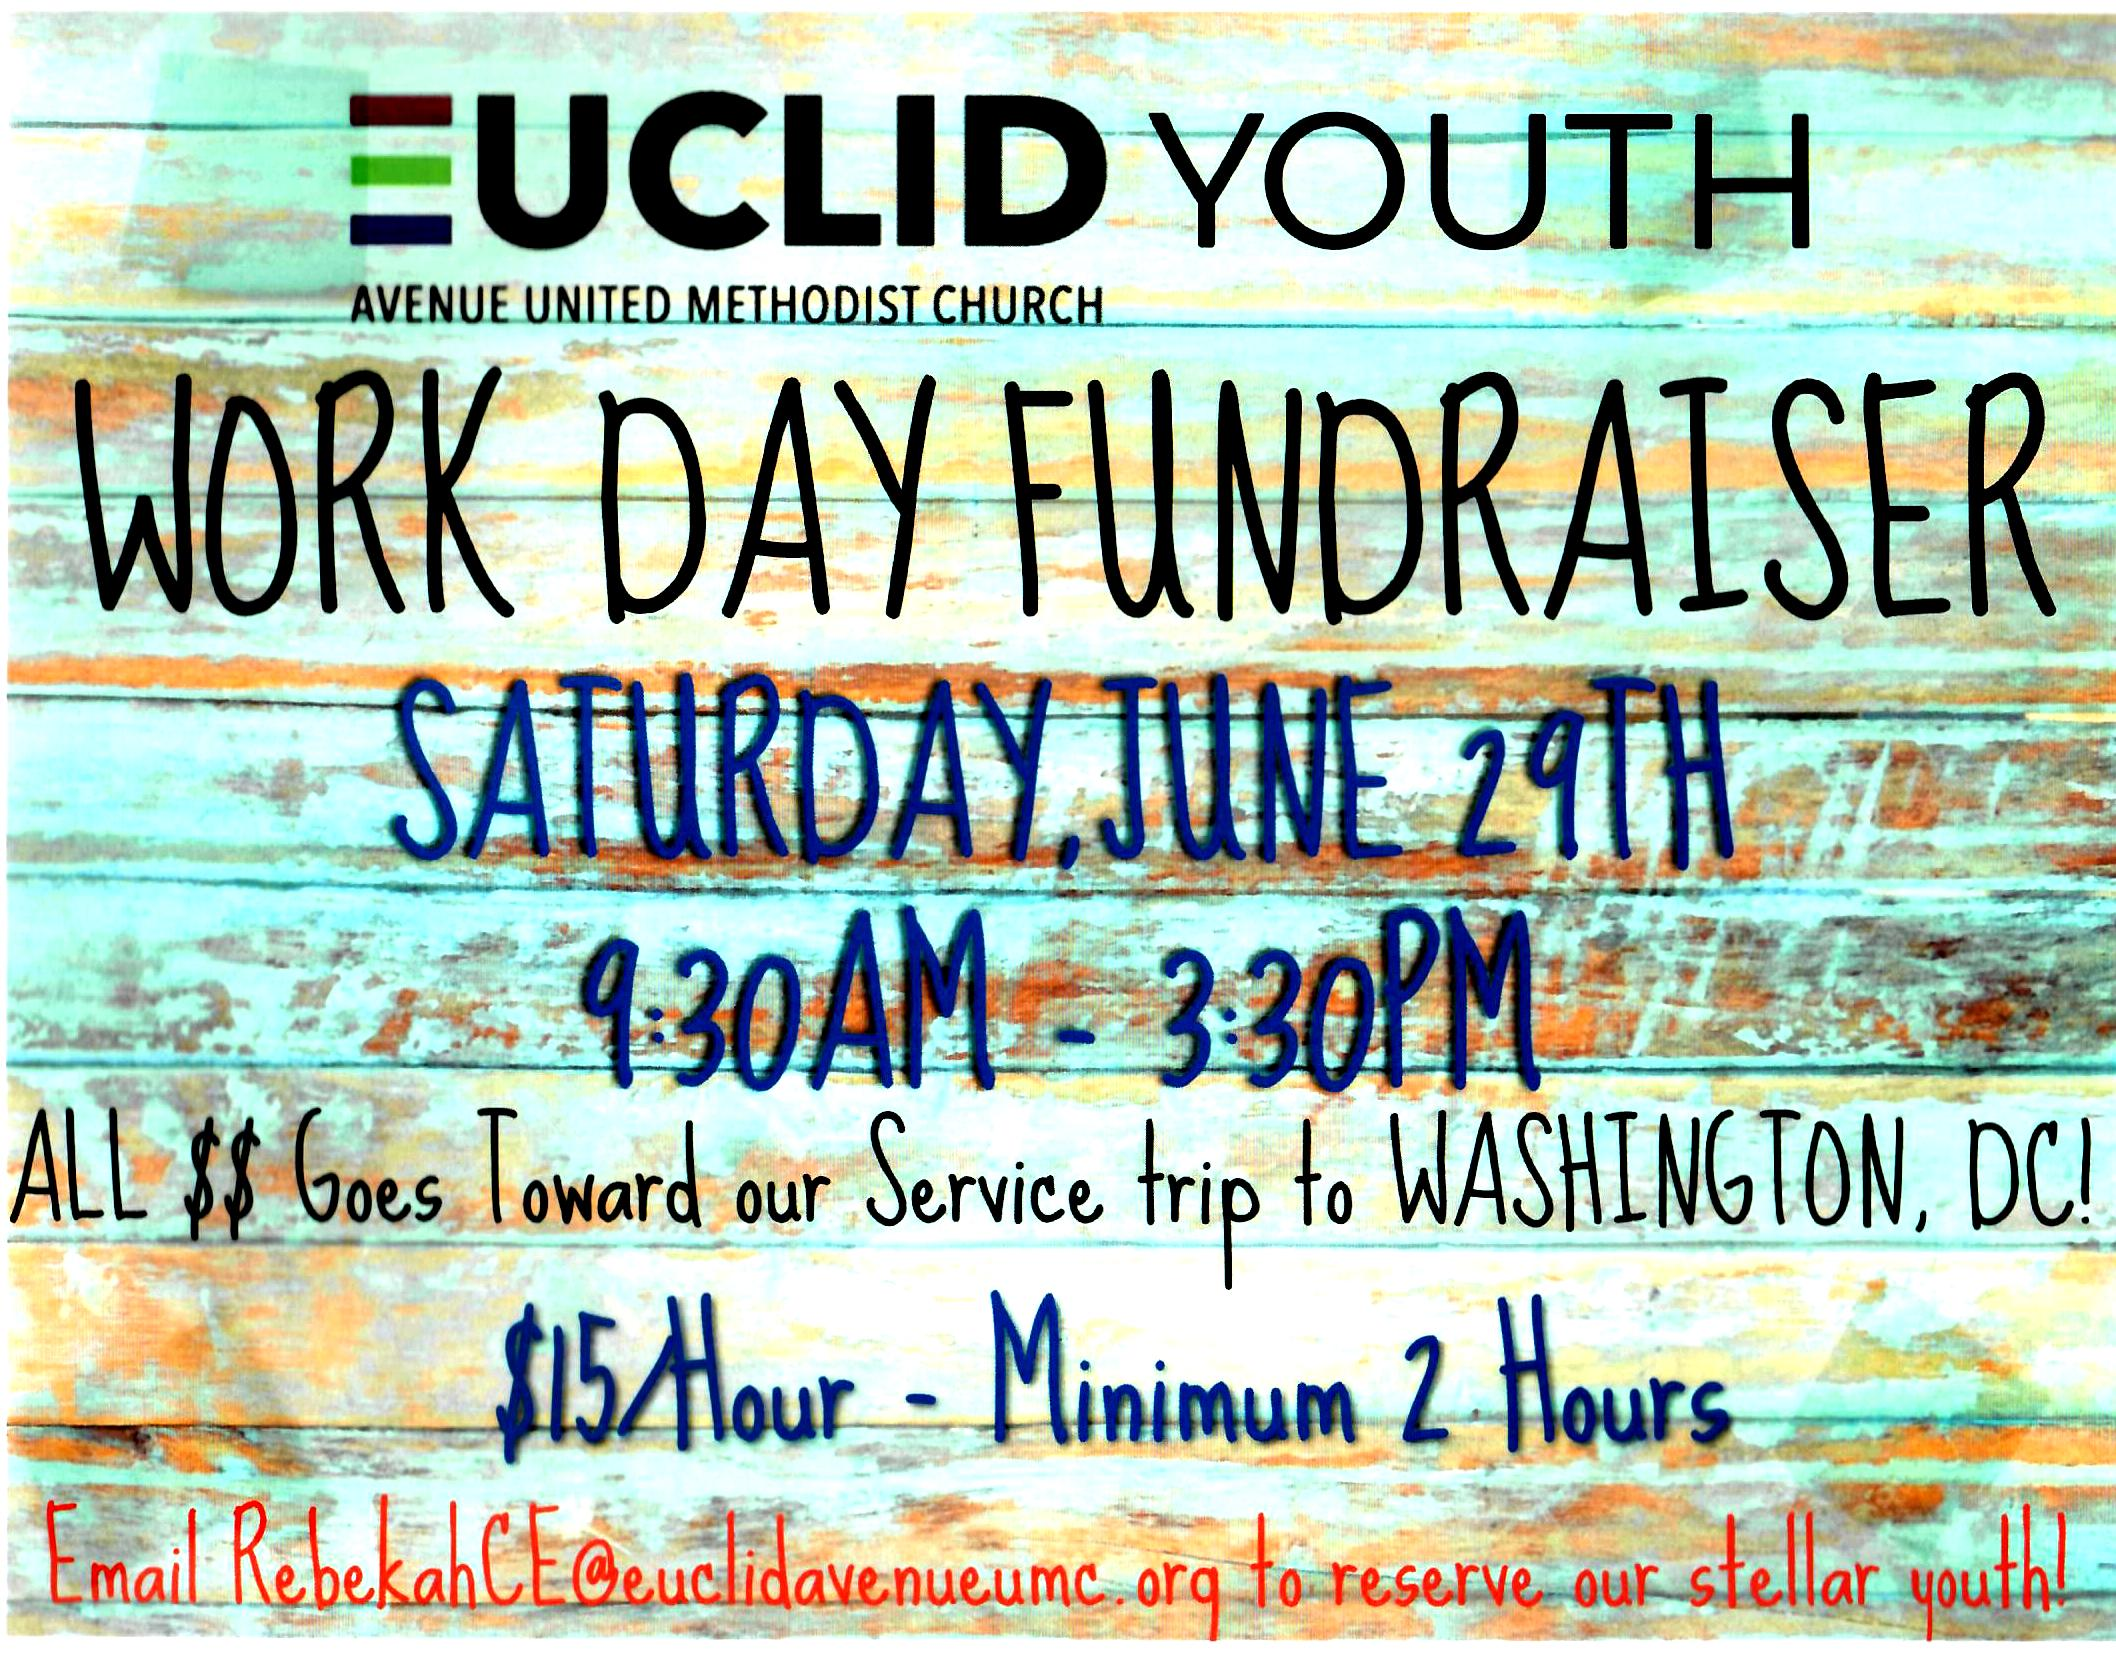 Euclid Youth Fundraiser, June 29th